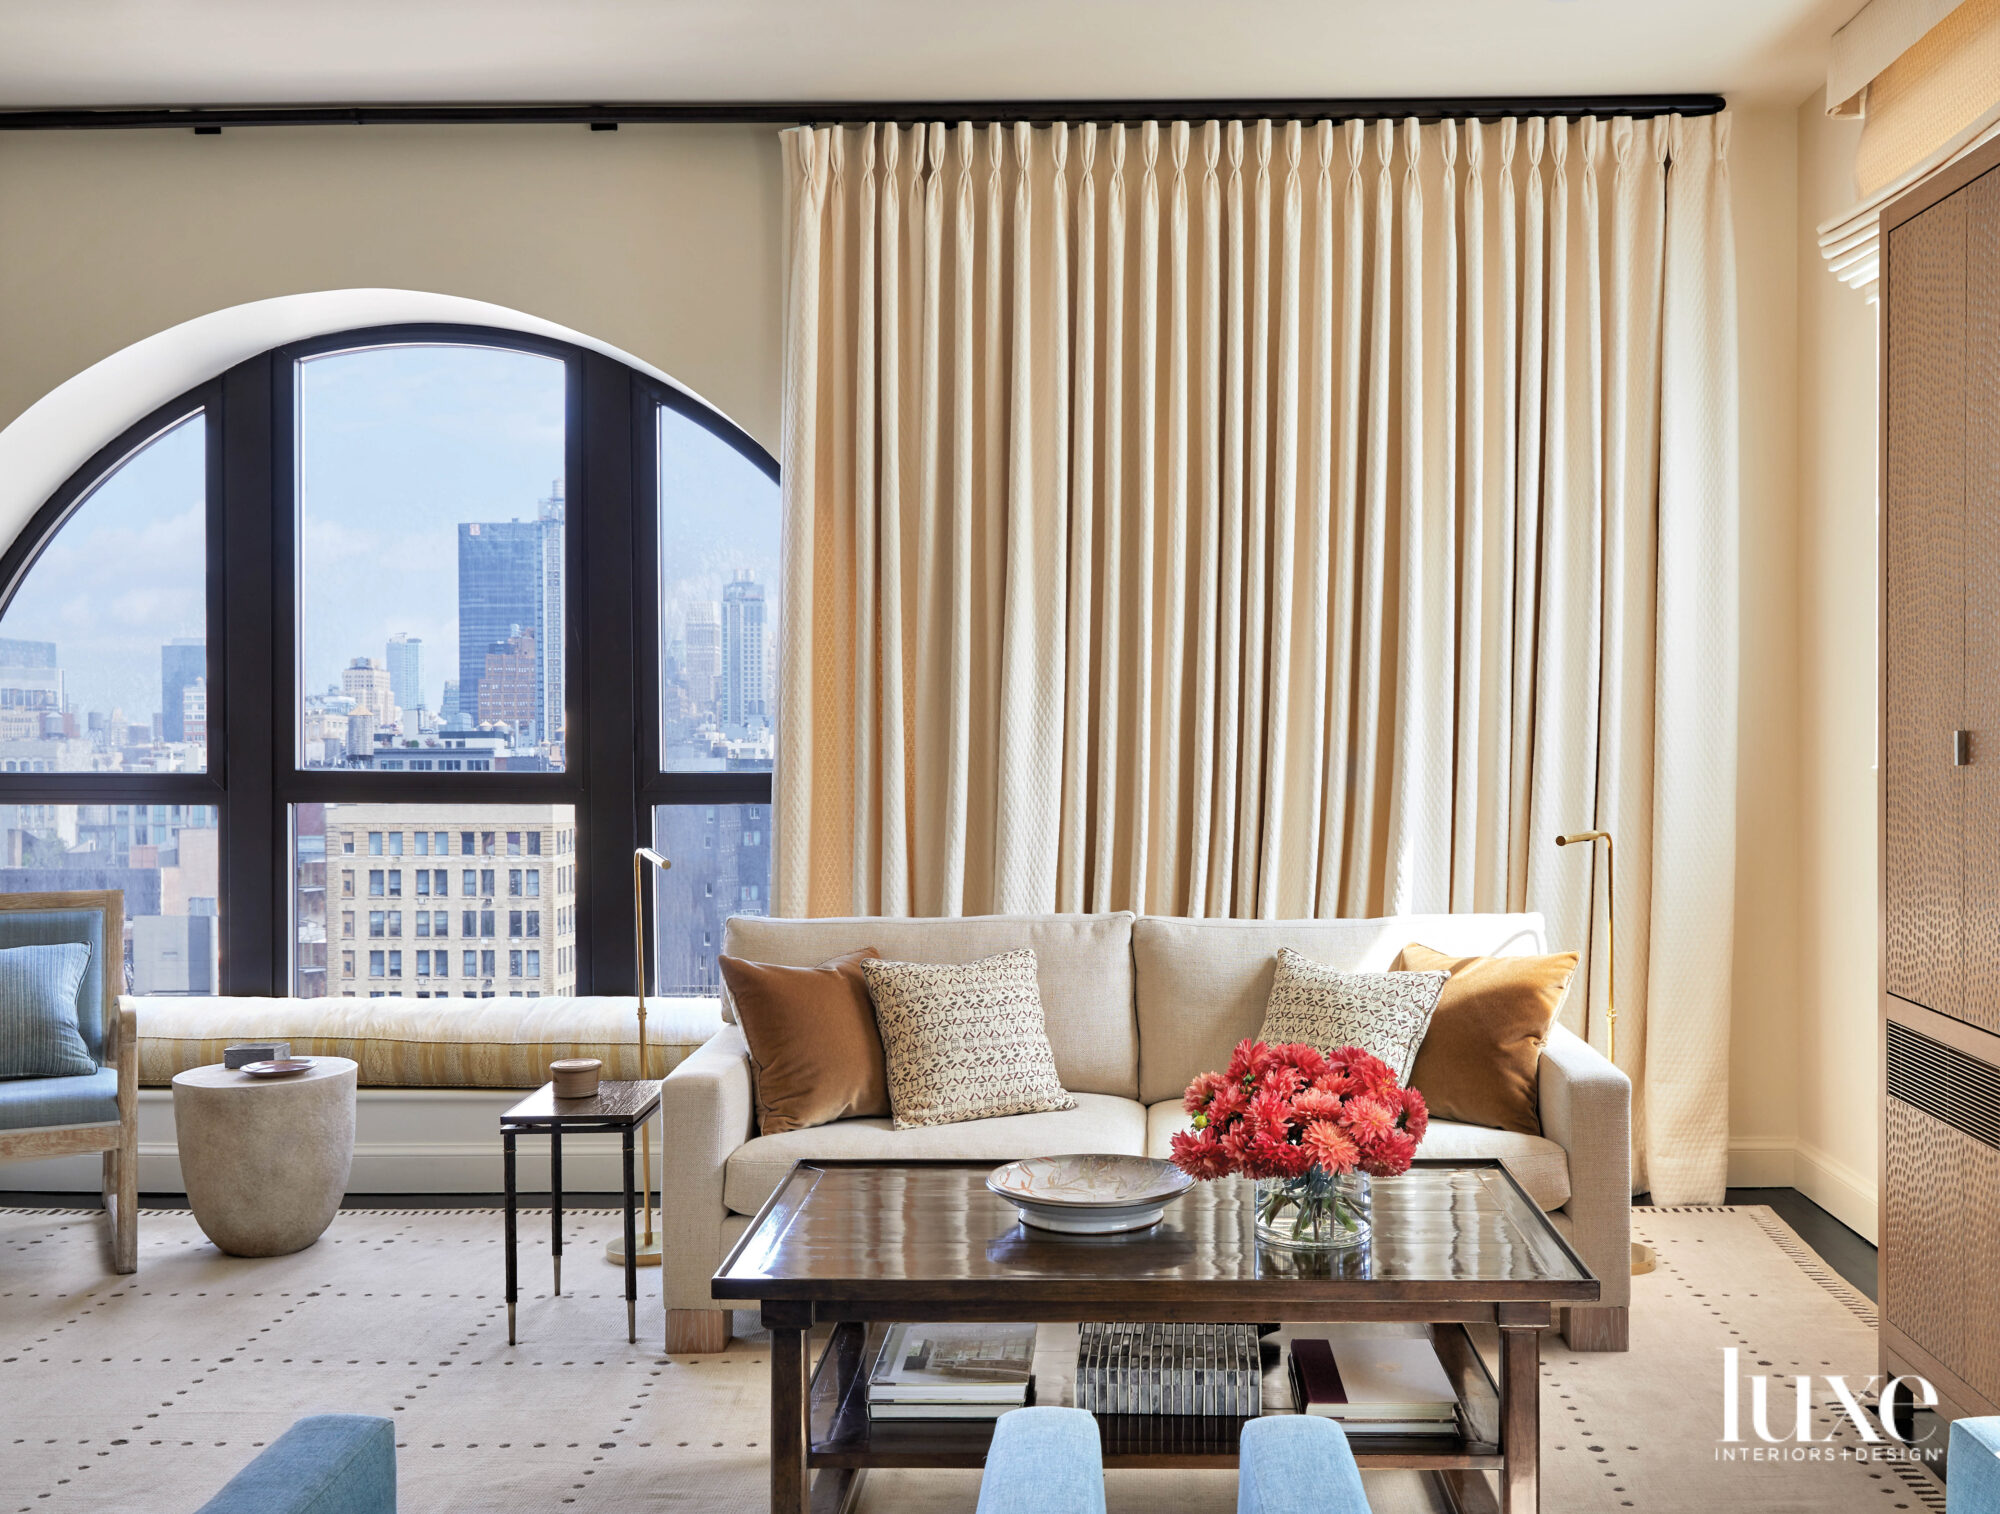 A Pattern-Loving L.A. Designer Takes On A Minimalist Manhattan Pied-A-Terre